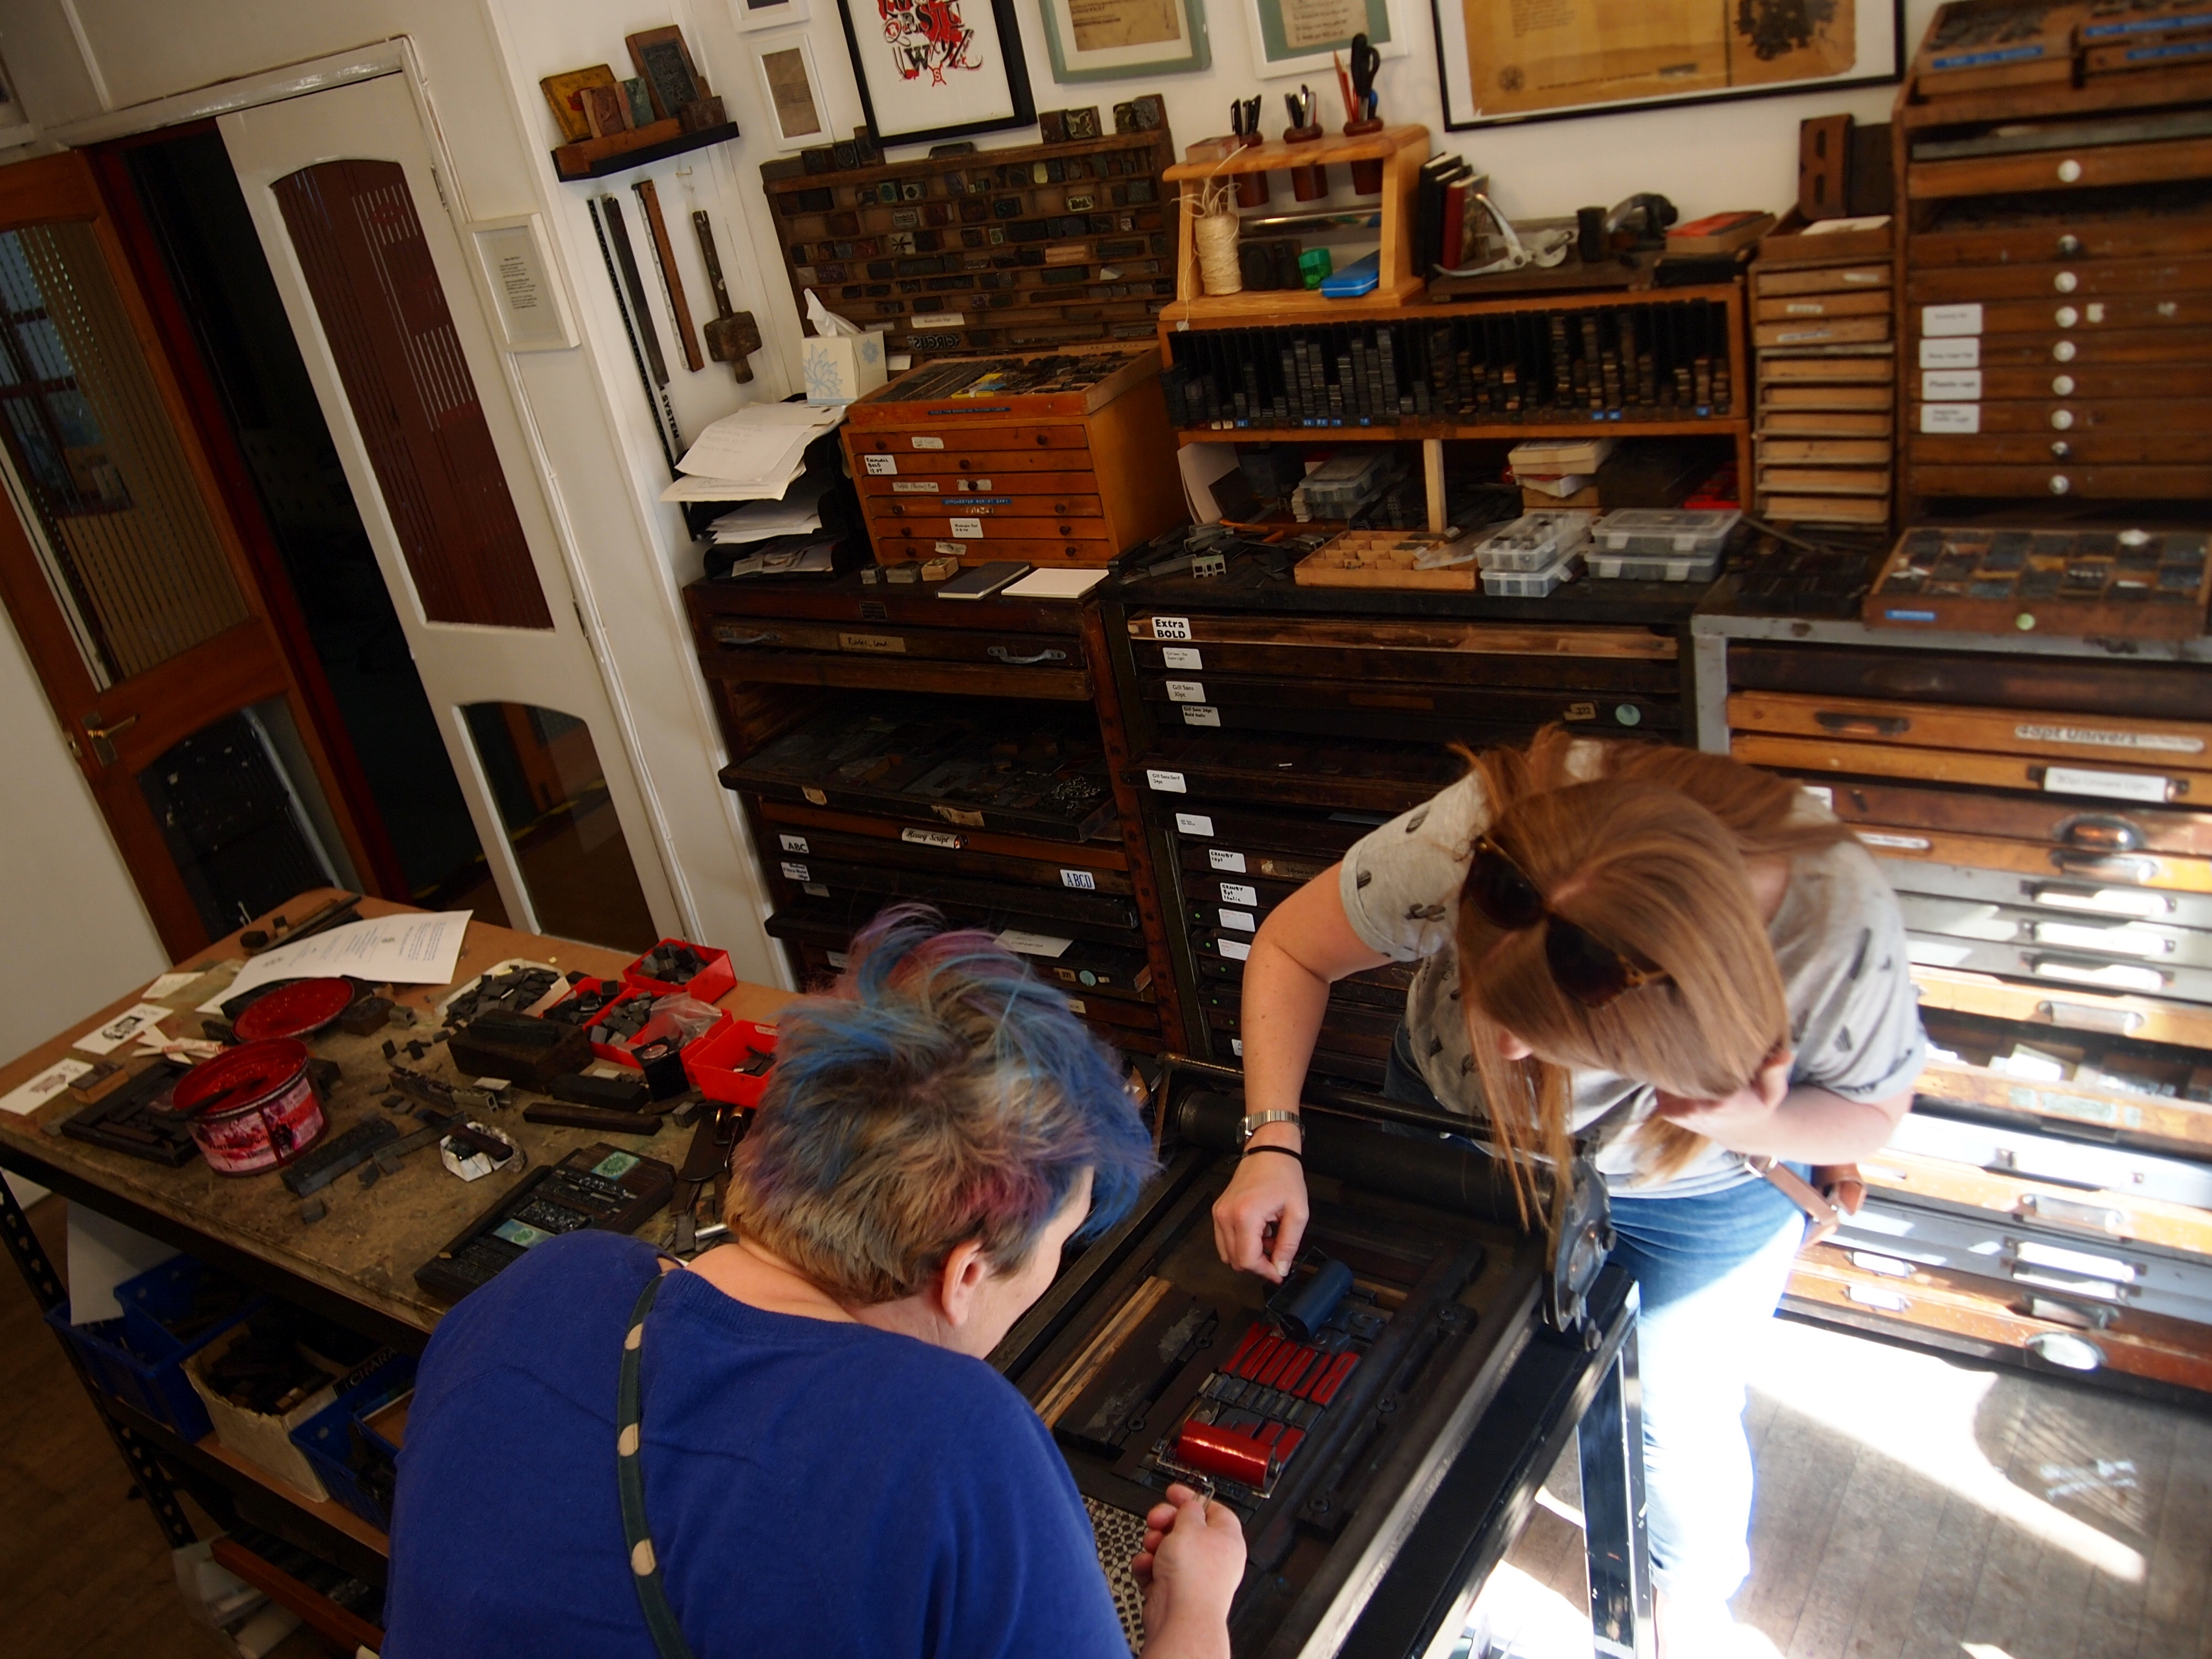 Print a Letterpress Poster: Drop-in session